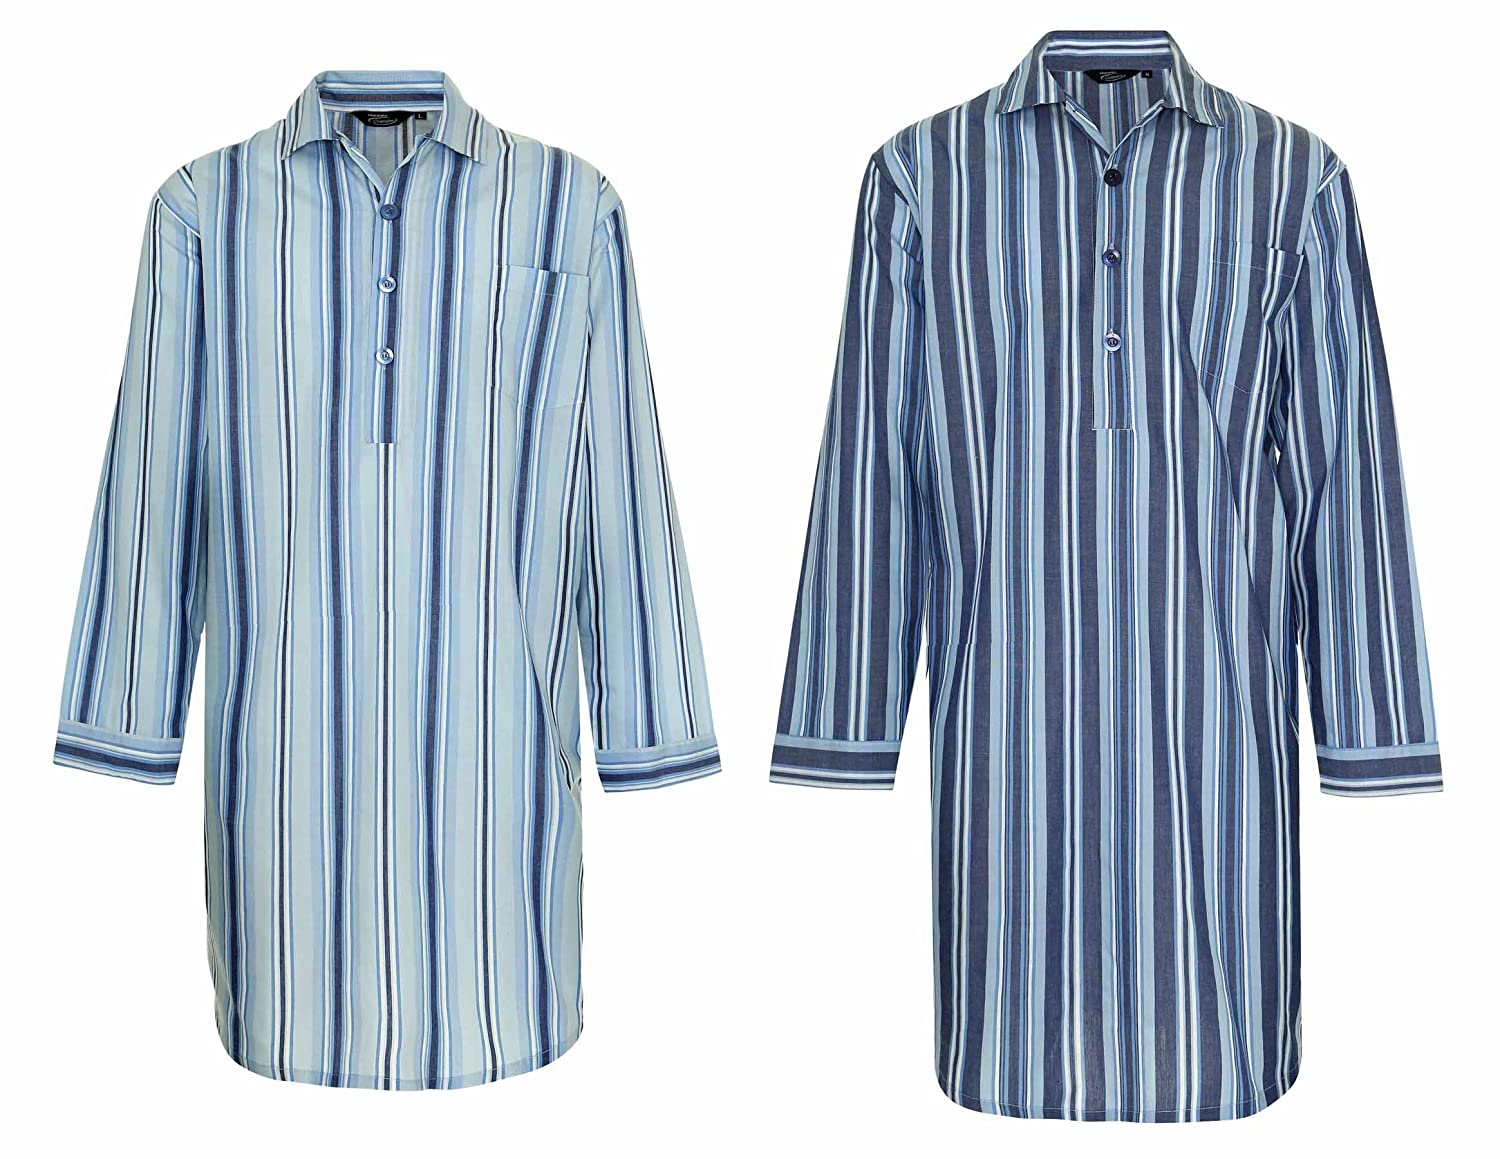 Champion Mens Westminster Nightshirt Lounge Wear (Pack of 2) ZZ-MPYJ-3175-2pk